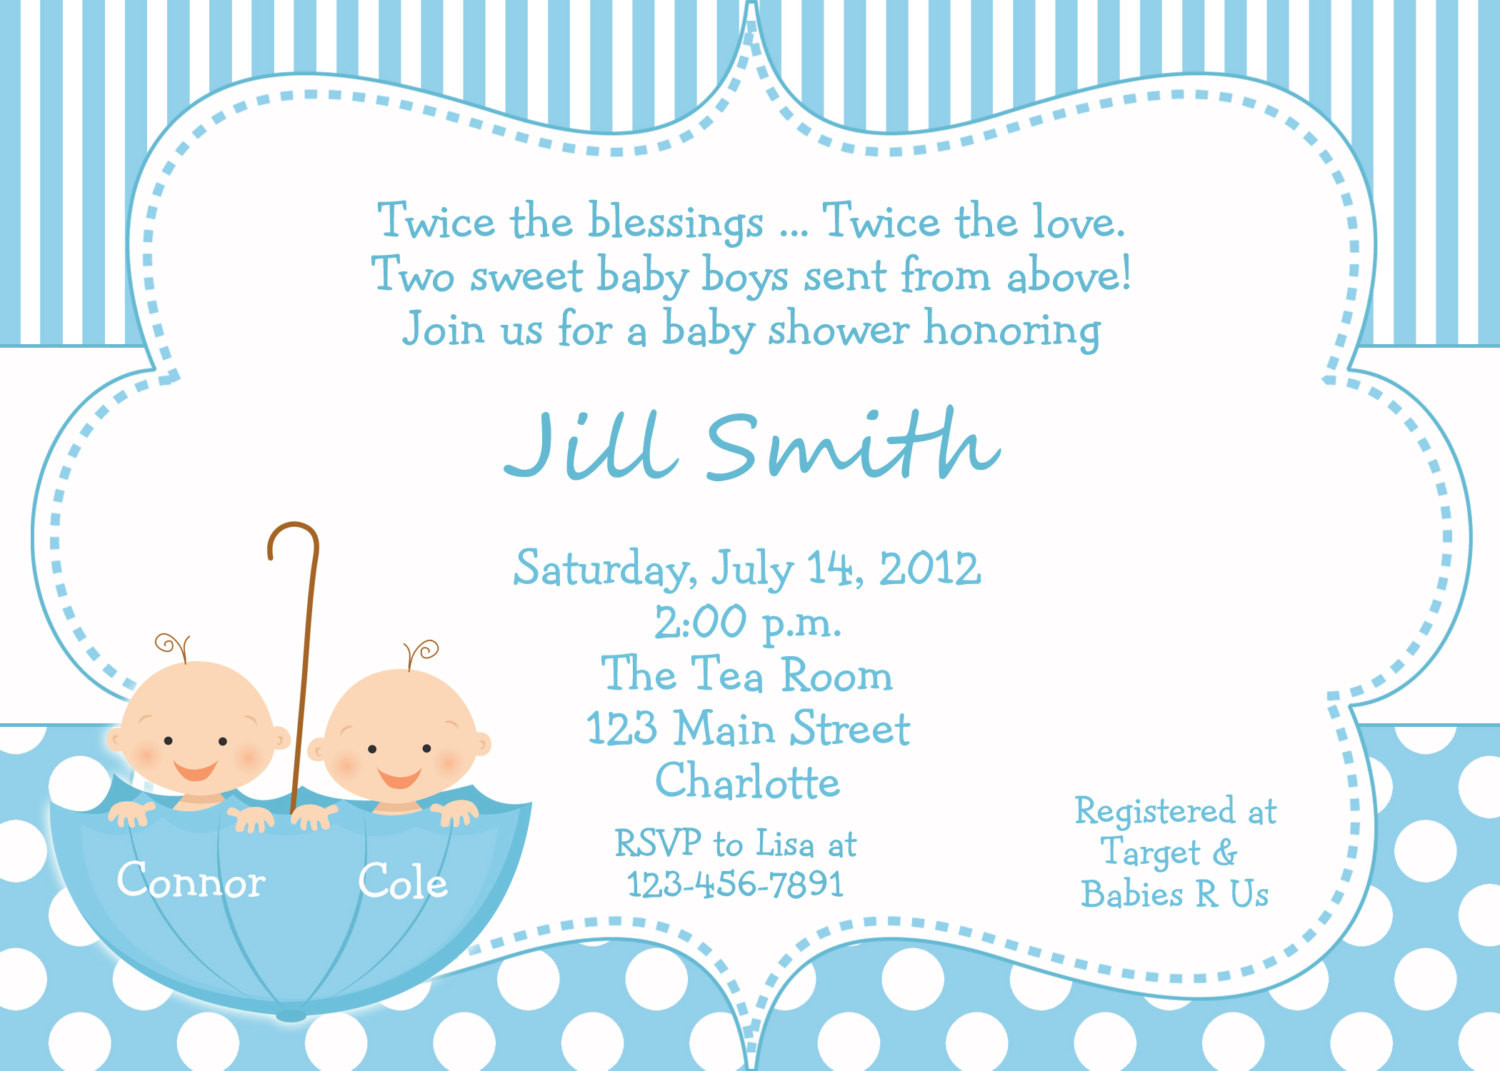 Full Size of Baby Shower:delightful Baby Shower Invitation Wording Picture Designs Baby Shower Invitations With Baby Shower De Niño Plus Cheap Baby Shower Gifts Together With Baby Boy Shower Favors